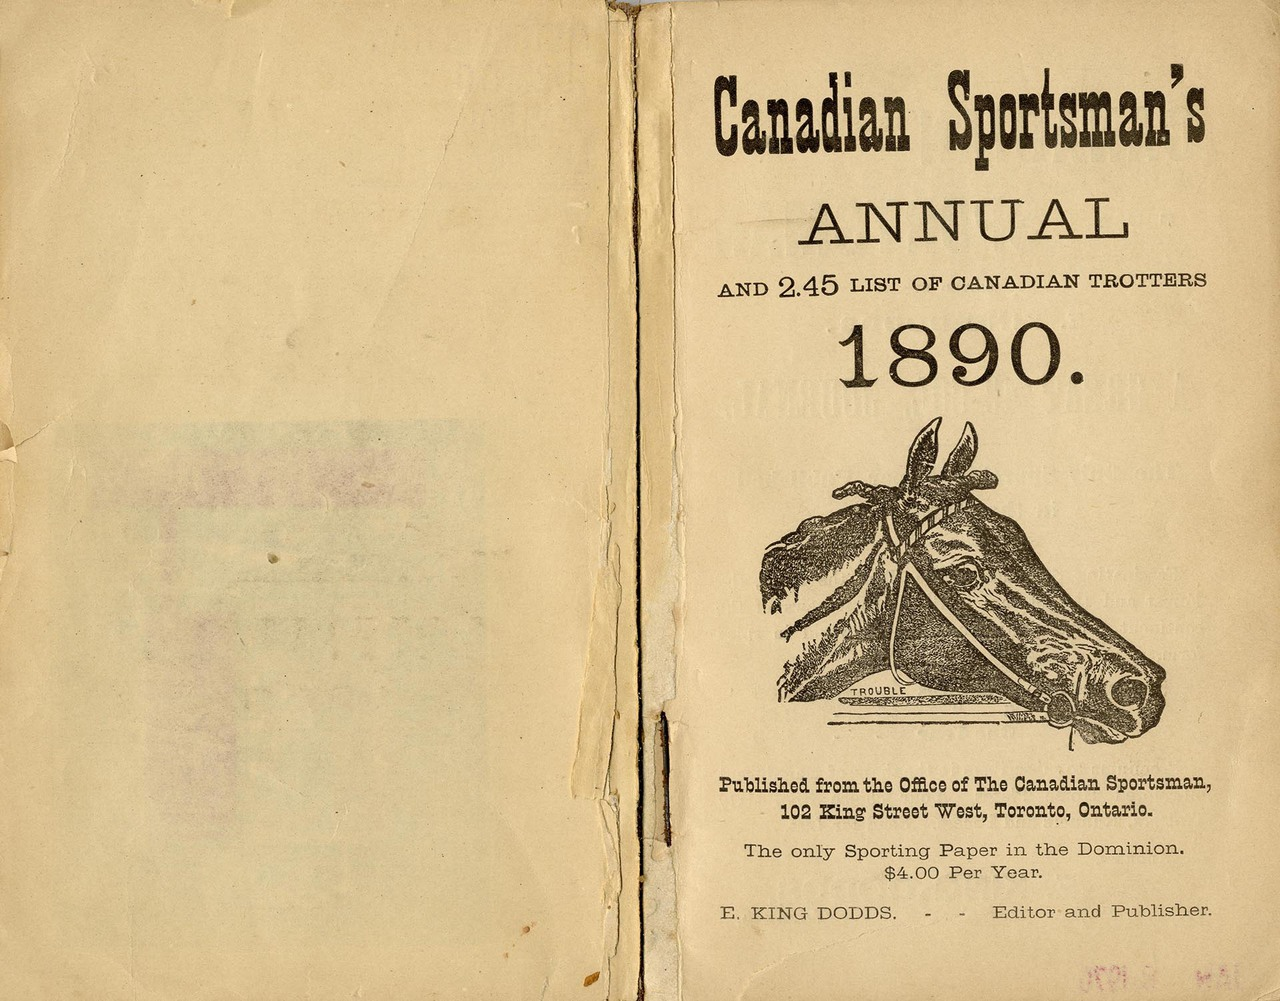 Canadian Sportsman's Annual